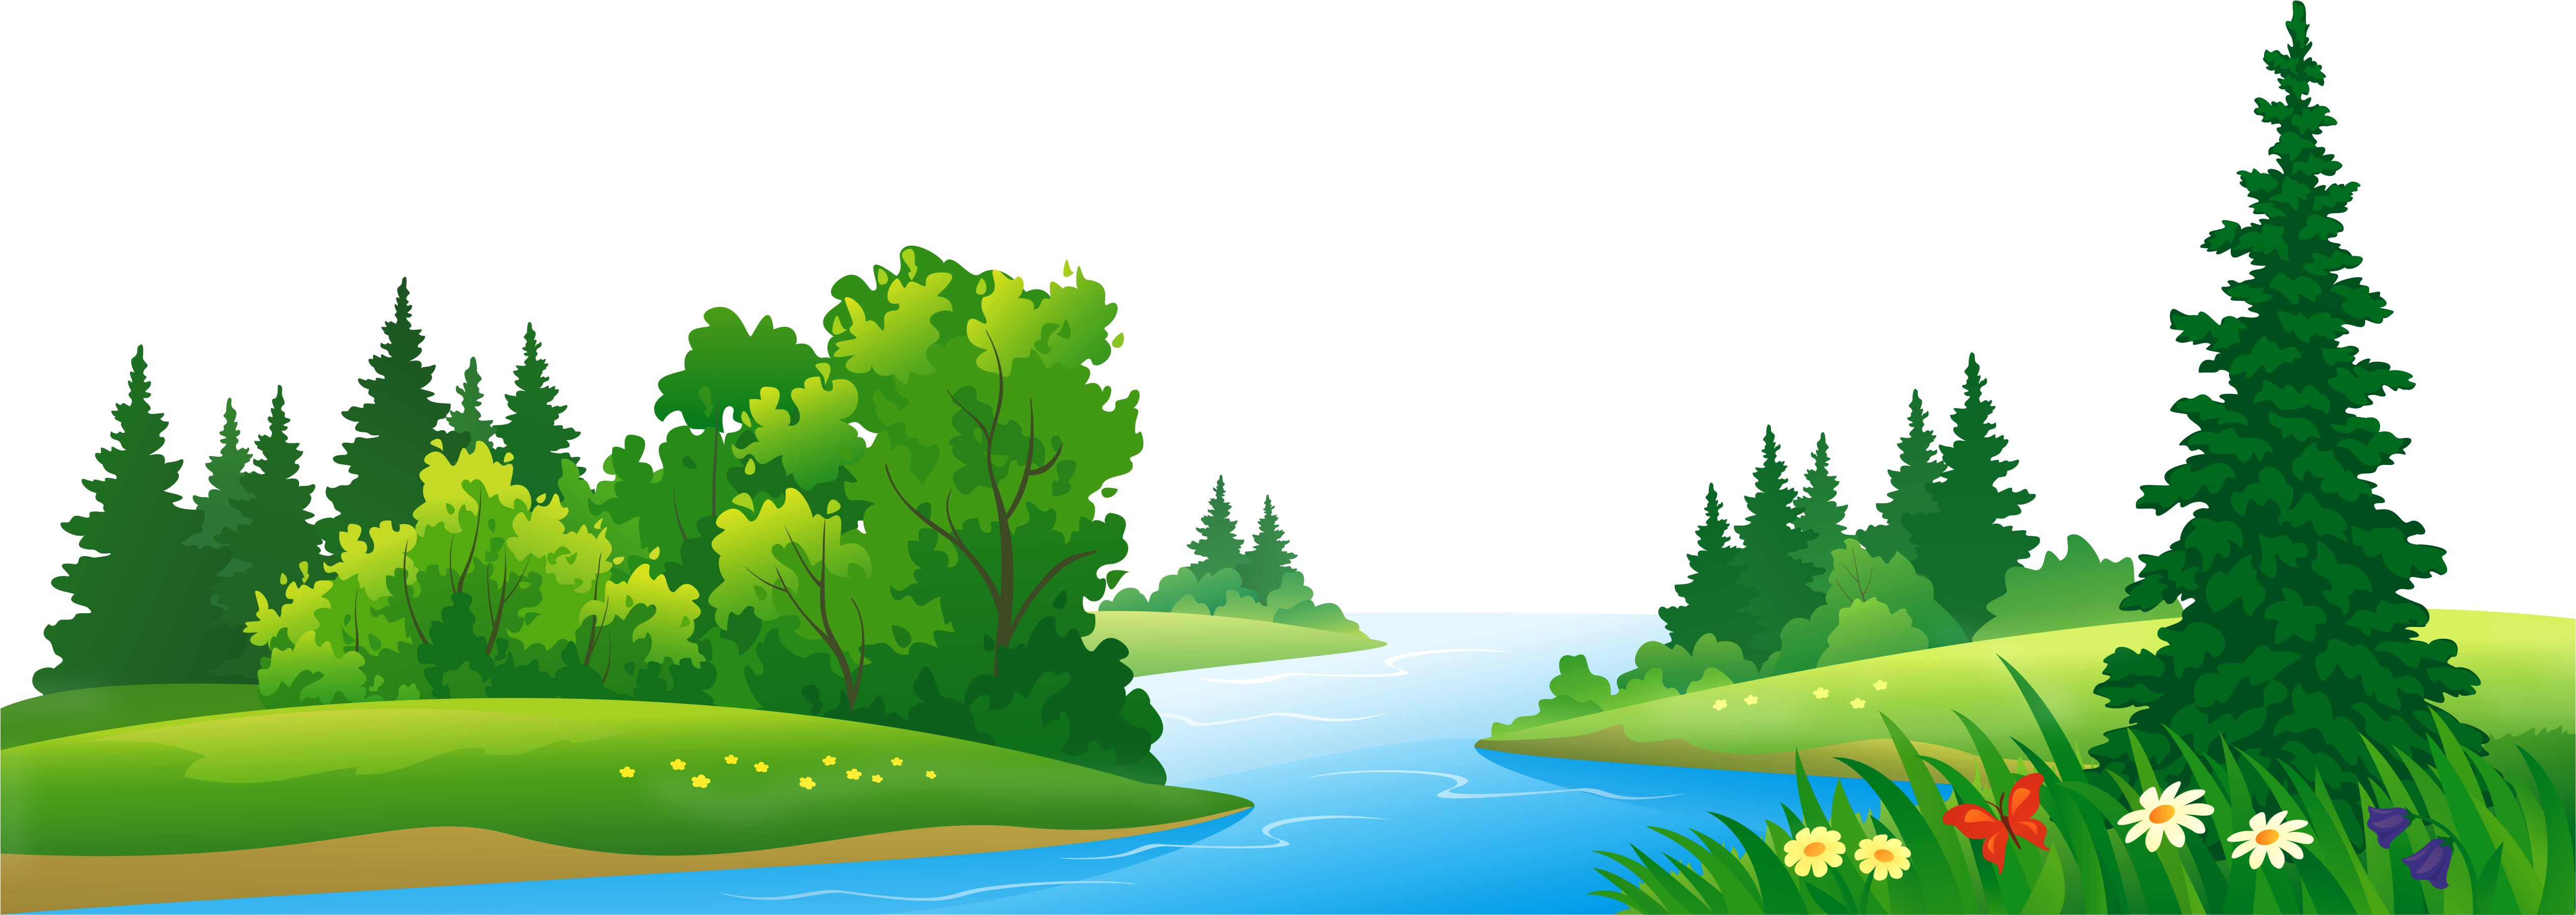 Download Hd Grass Lake And Trees Transparent Png Clipart Forest Clipart Png Transparent Png Image Nicepng Com Trees, tree branches and forest in png and psd format, green, summer, winter, in the snow, autumn, natural and graphics, living and dead trees and tree branches, downloa. download hd grass lake and trees